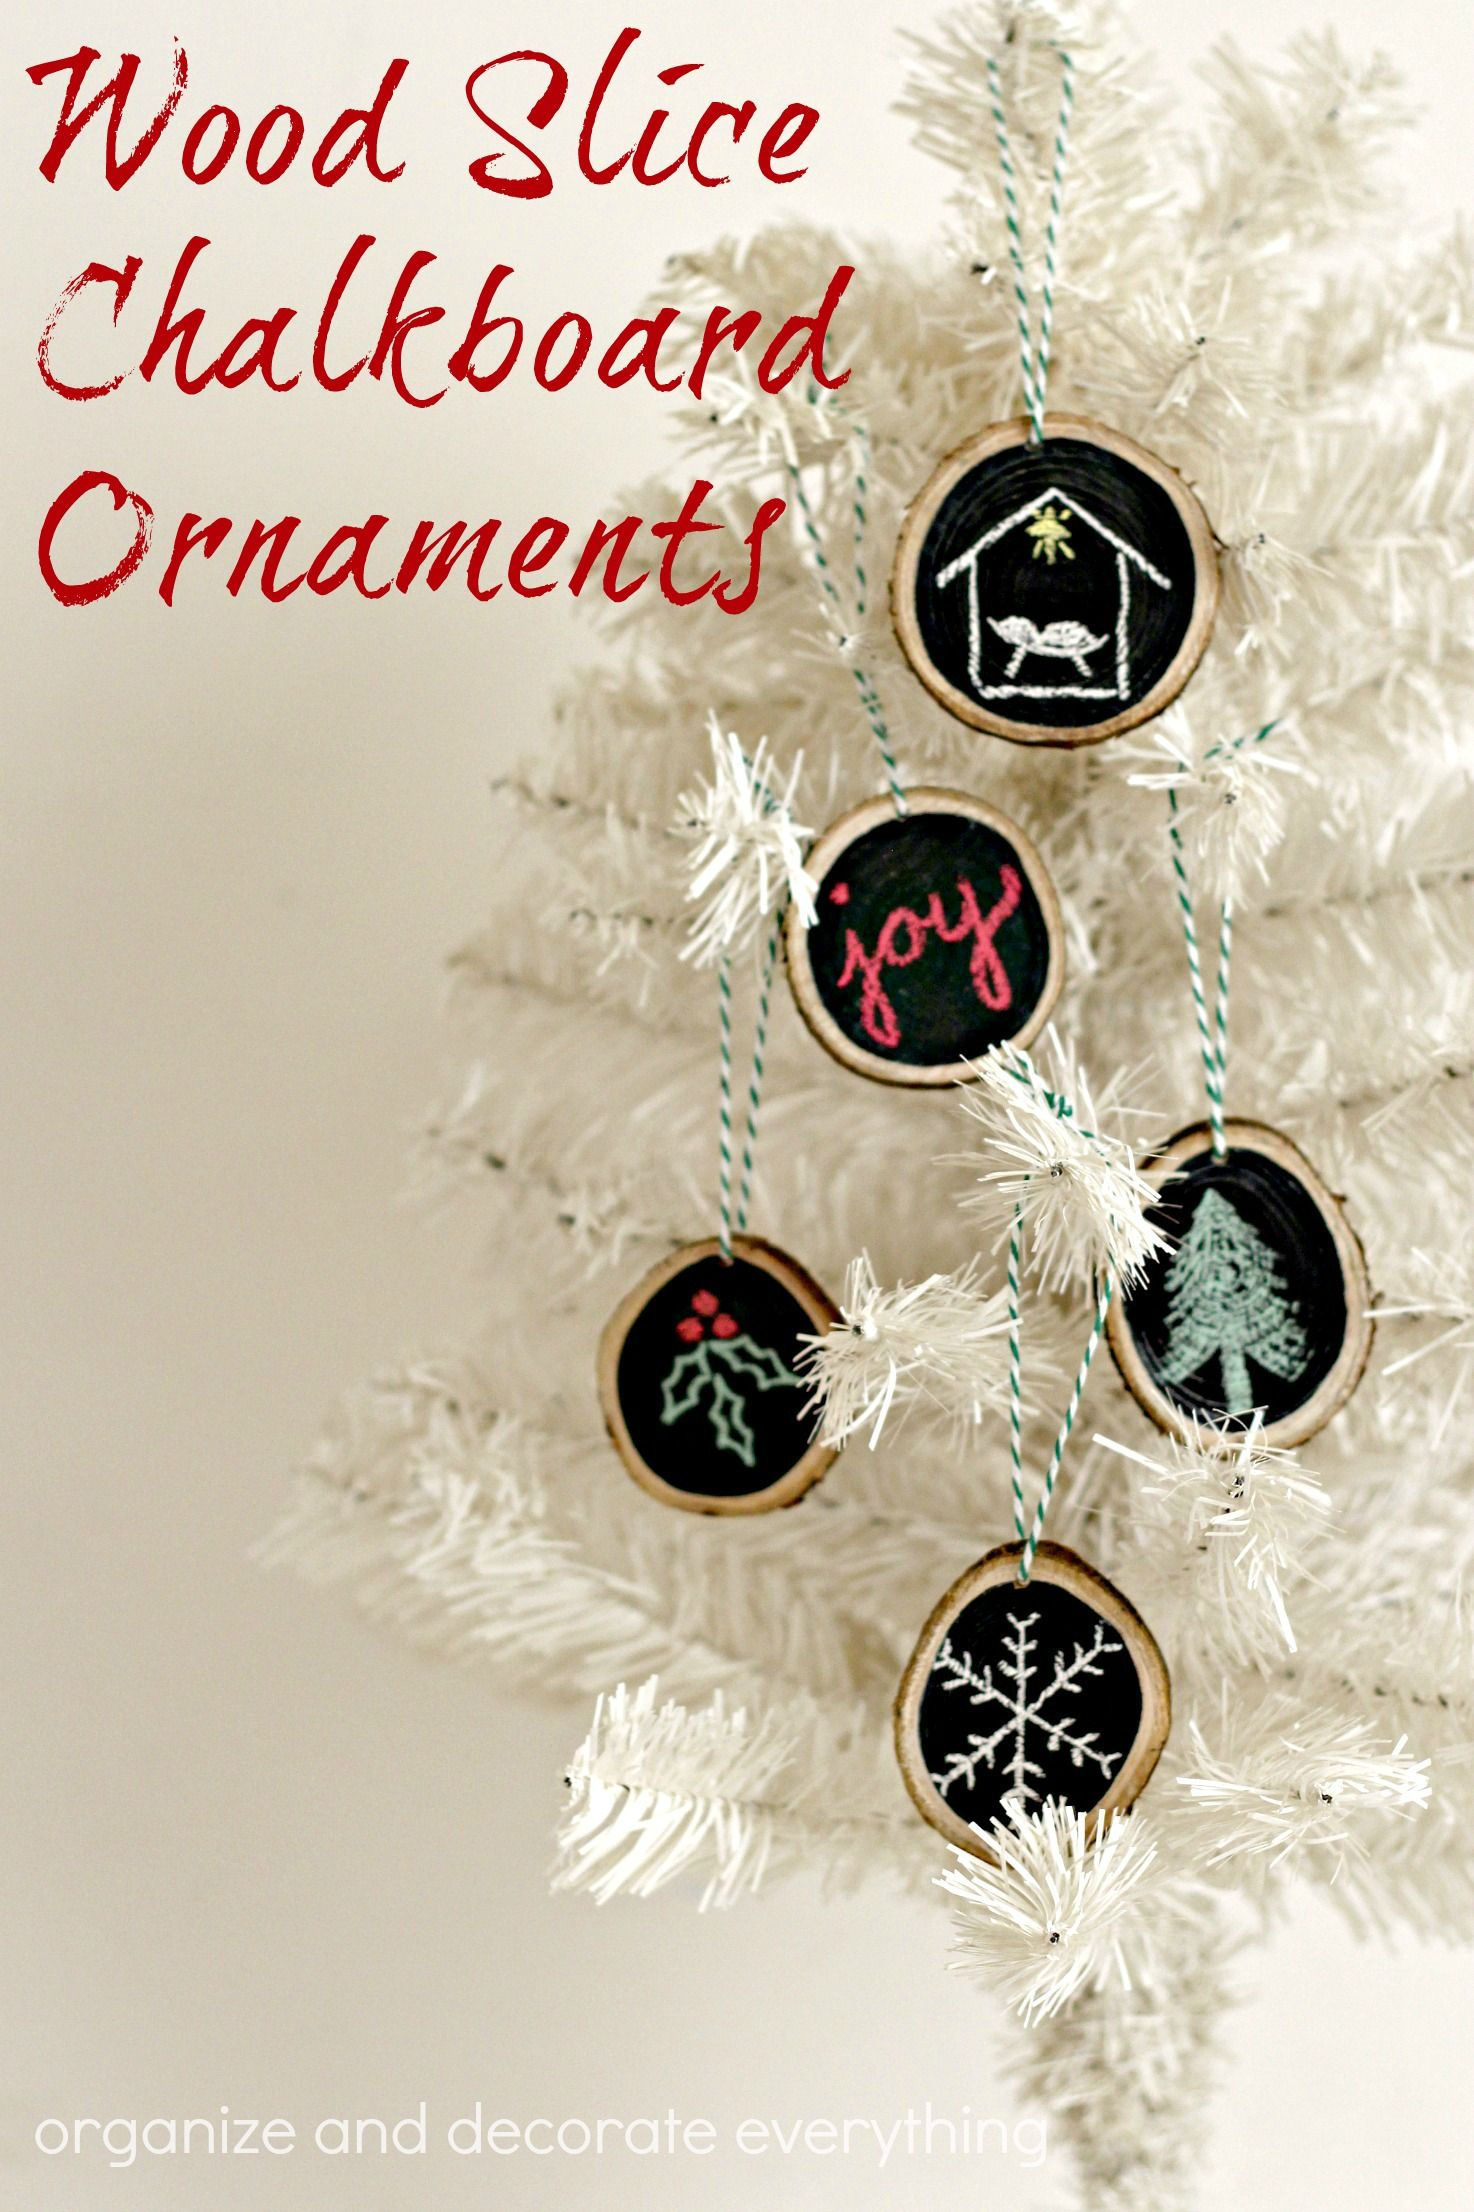 wood slice chalkboard ornaments are fun and easy for the whole family to make Wood Slice Chalkboard Ornaments